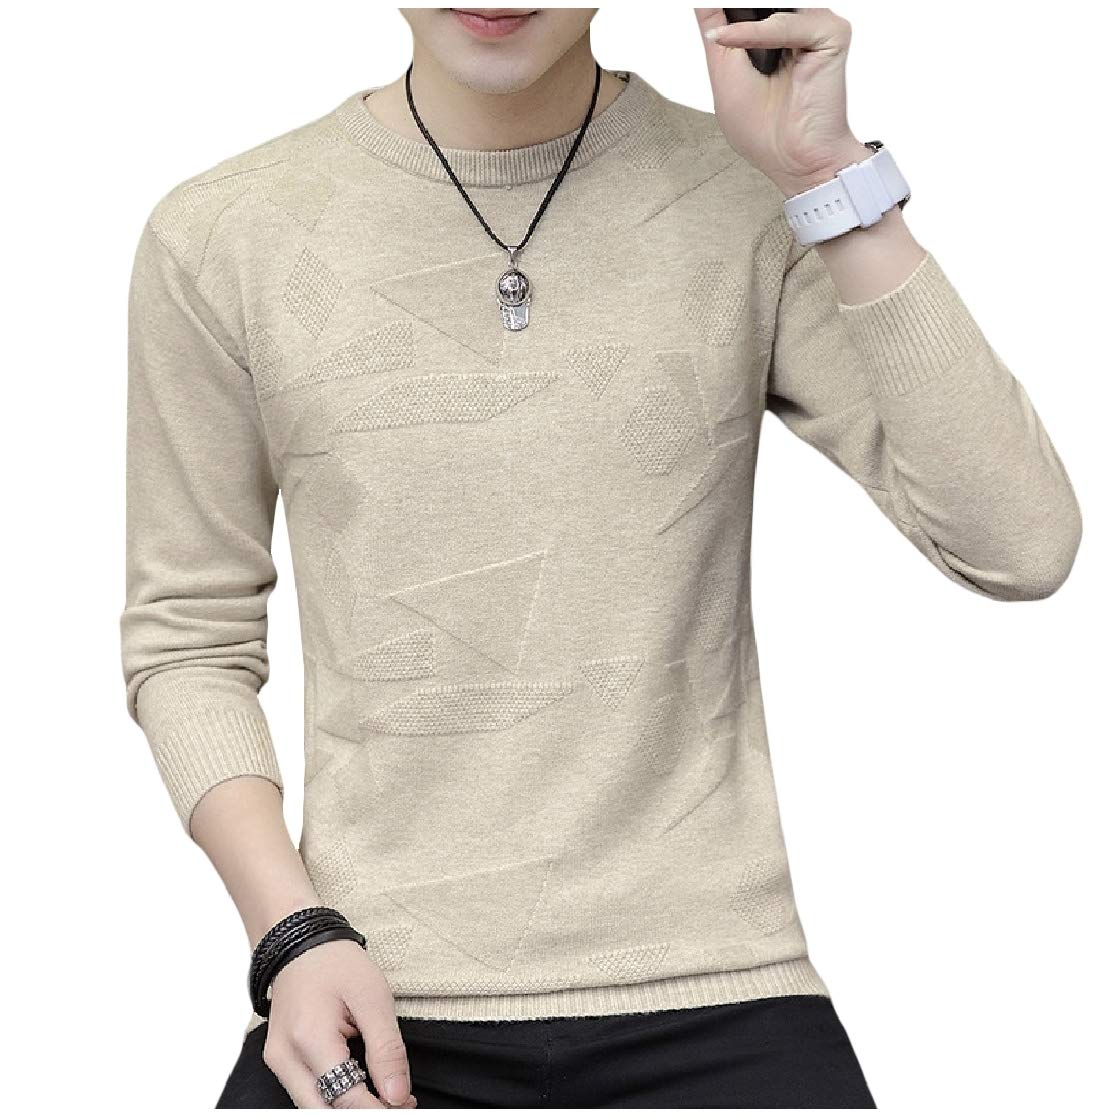 YUNY Mens Long-Sleeve Jacquard Silm Fit Knitwear Chic Soft Pullover Sweater Beige S